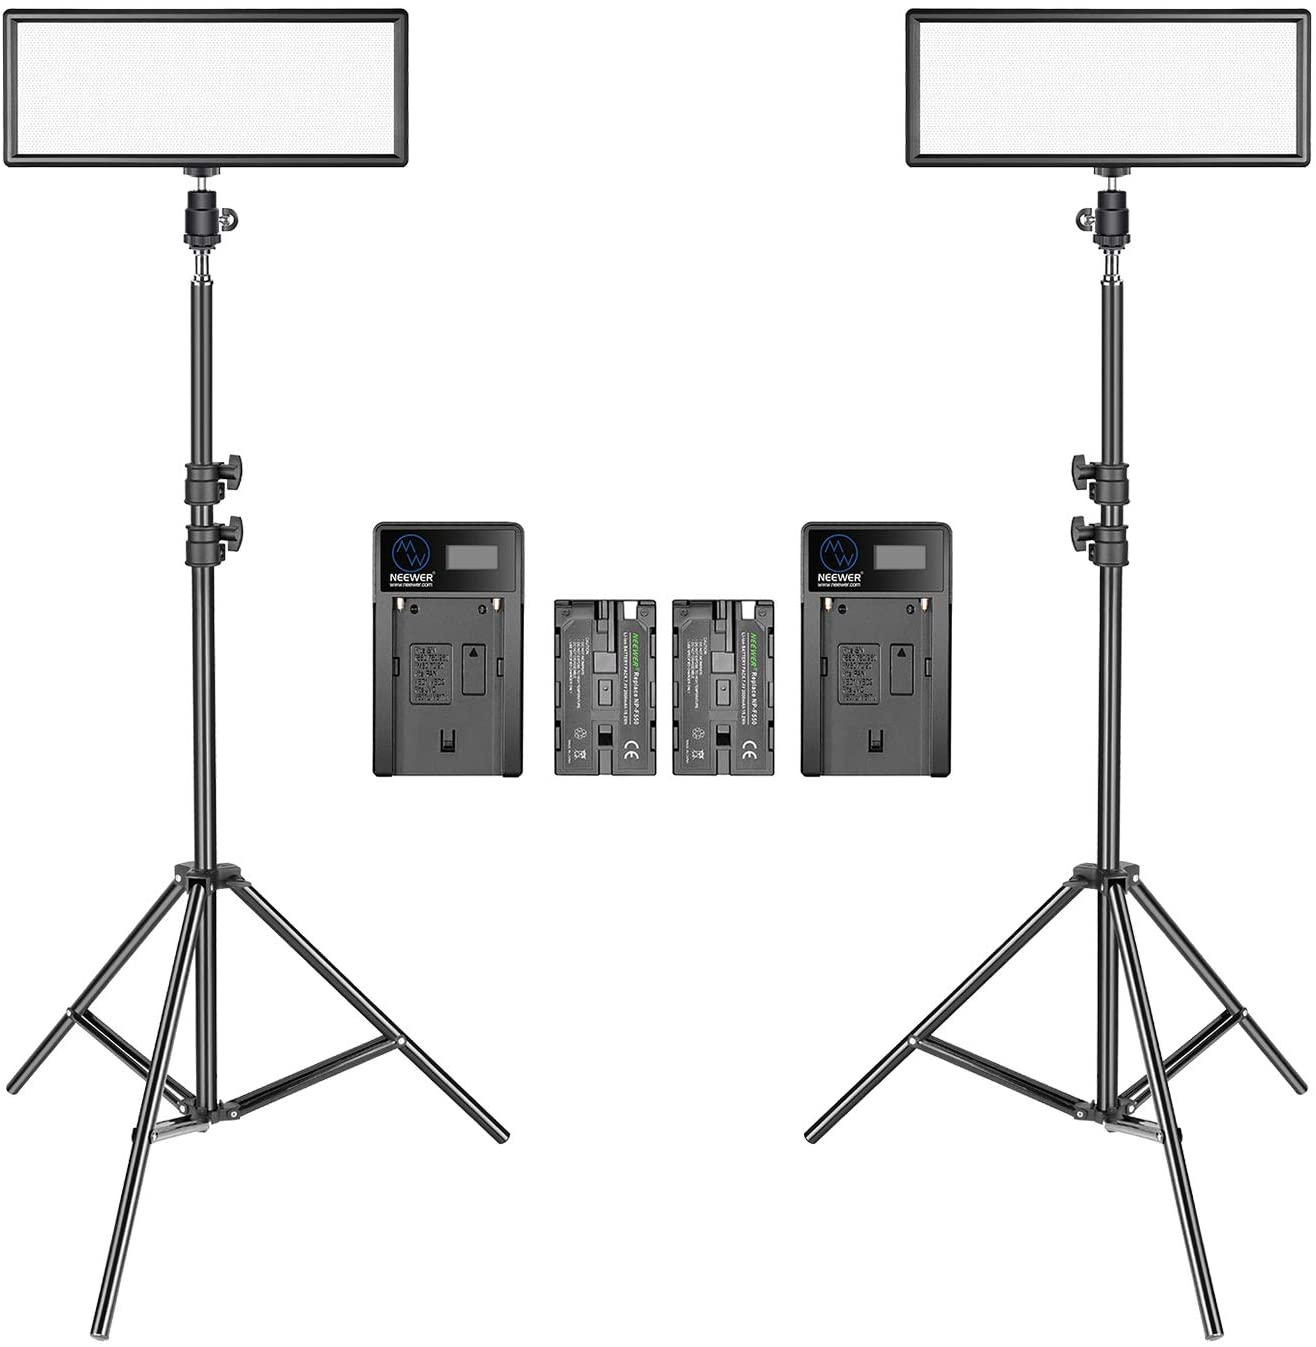 3200K-5600K Bi-Color Dimmable LED Panel Neewer 2 Packs Super Slim LED Video Light with Light Stand Photography Lighting Kit Li-ion Battery and Charger for Camera Photo Portrait Children Shooting